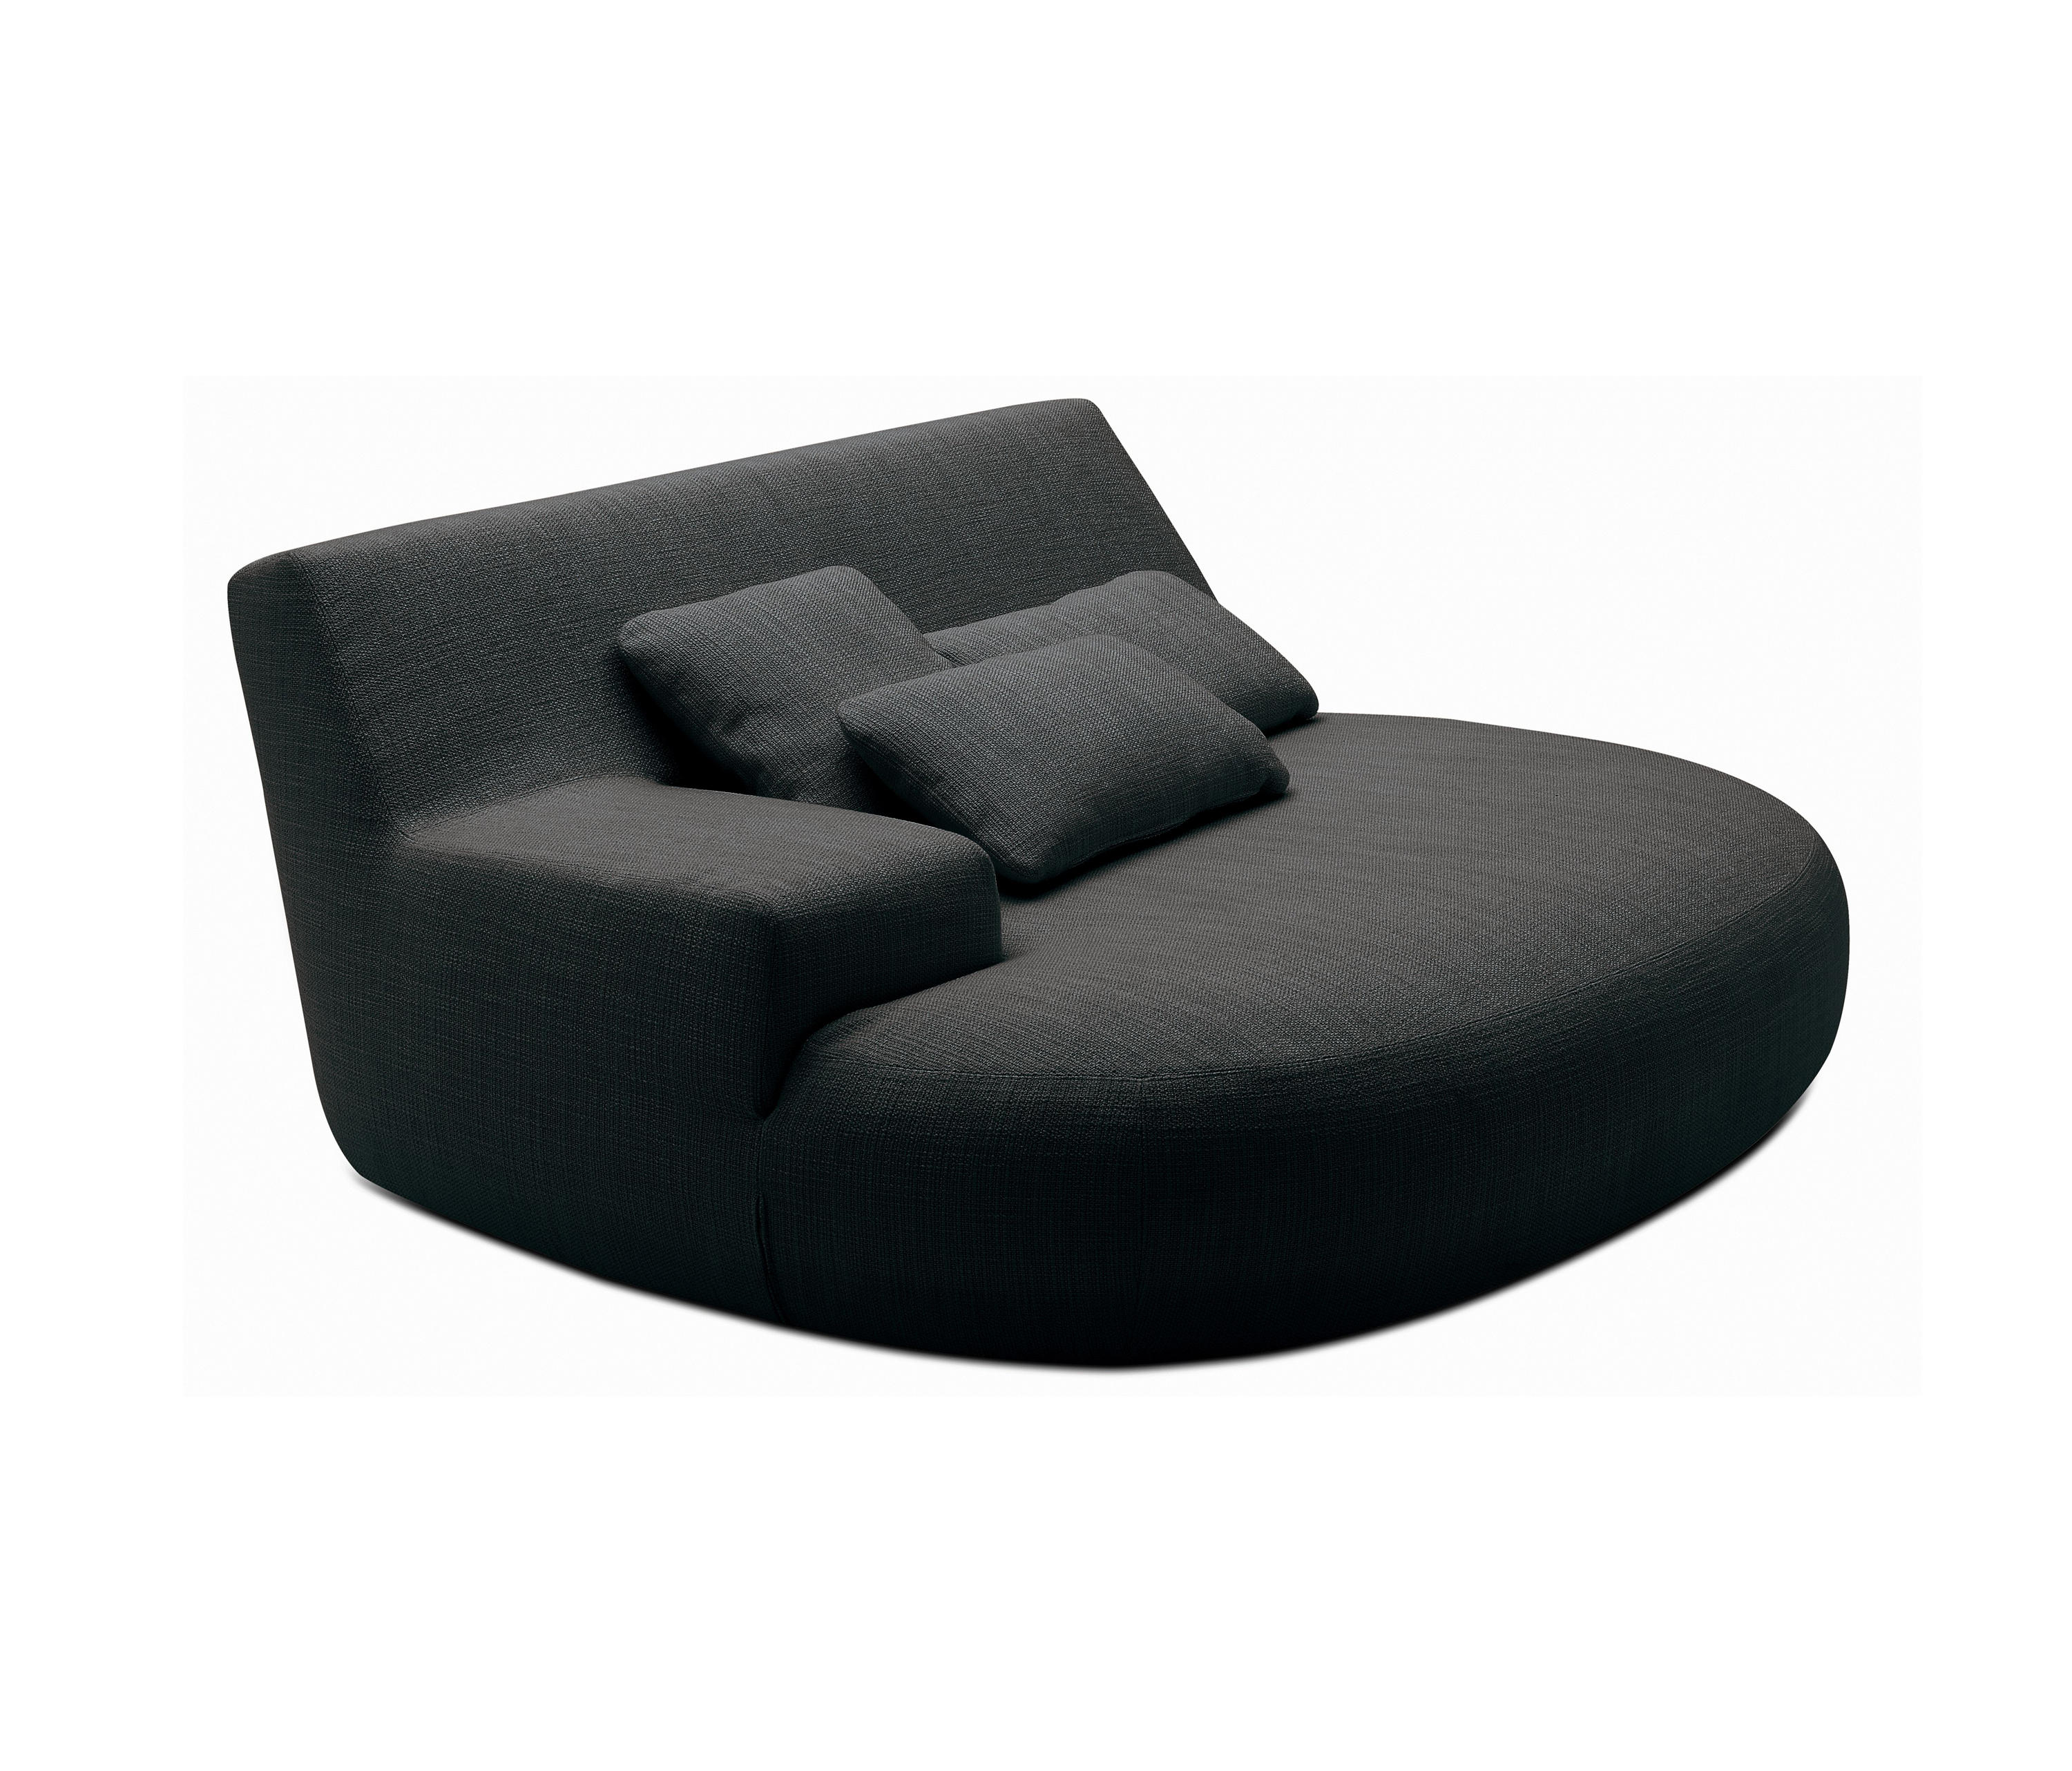 Big Bug Armchair By Poliform | Chaise Longues ...